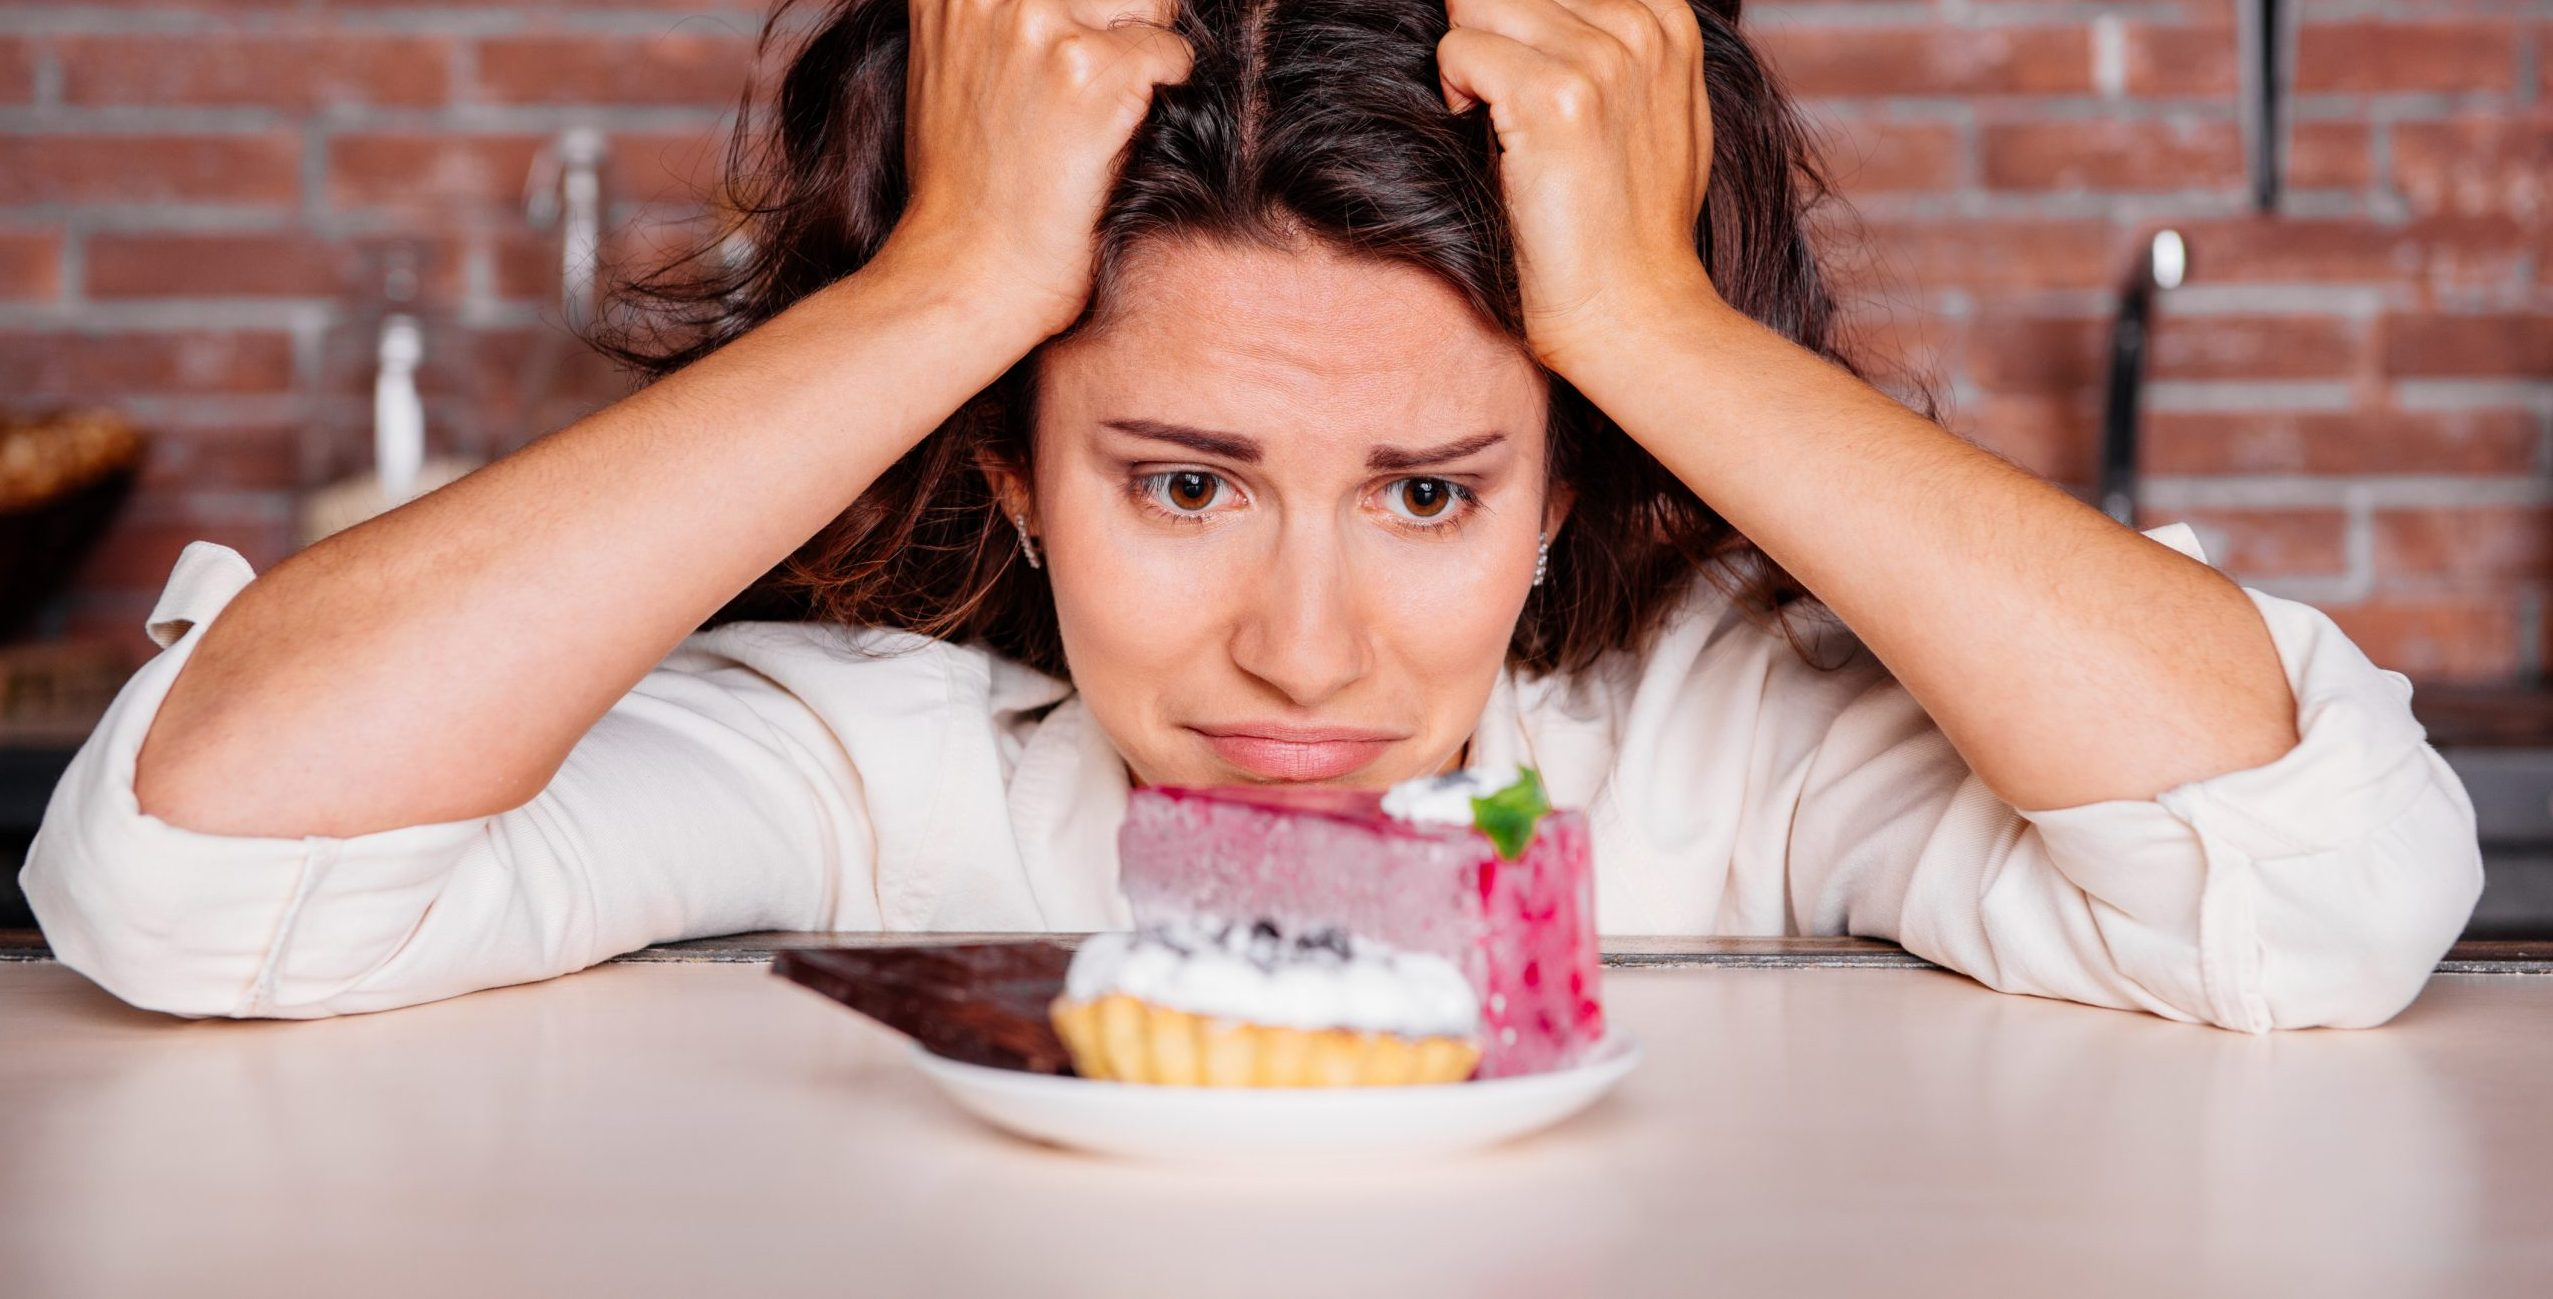 Woman craving to eat cake.